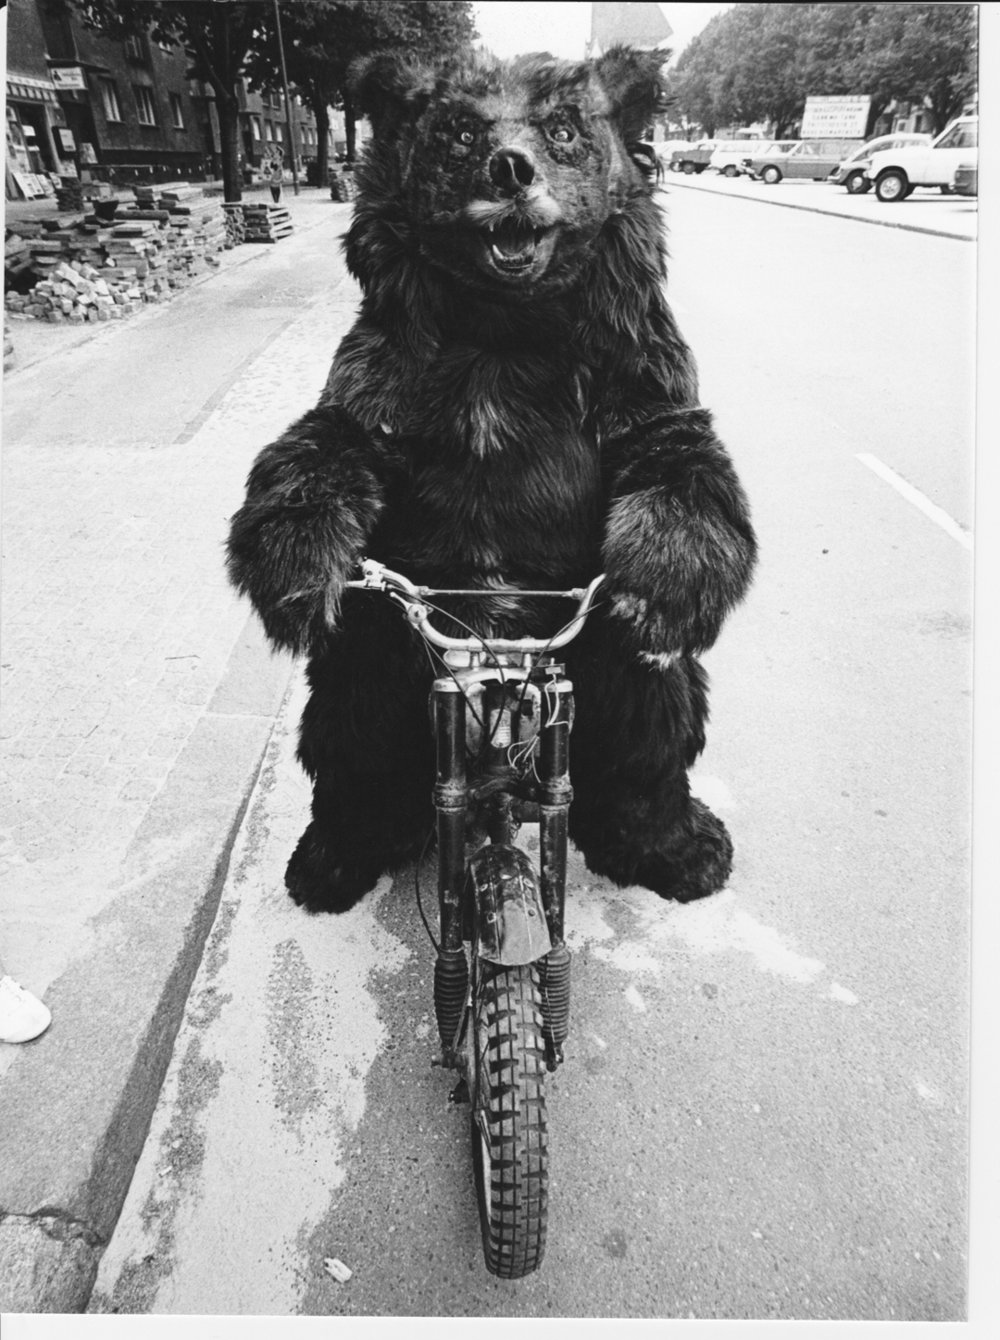 - This bear was not so stupid - not many bears can ride a motorbike.